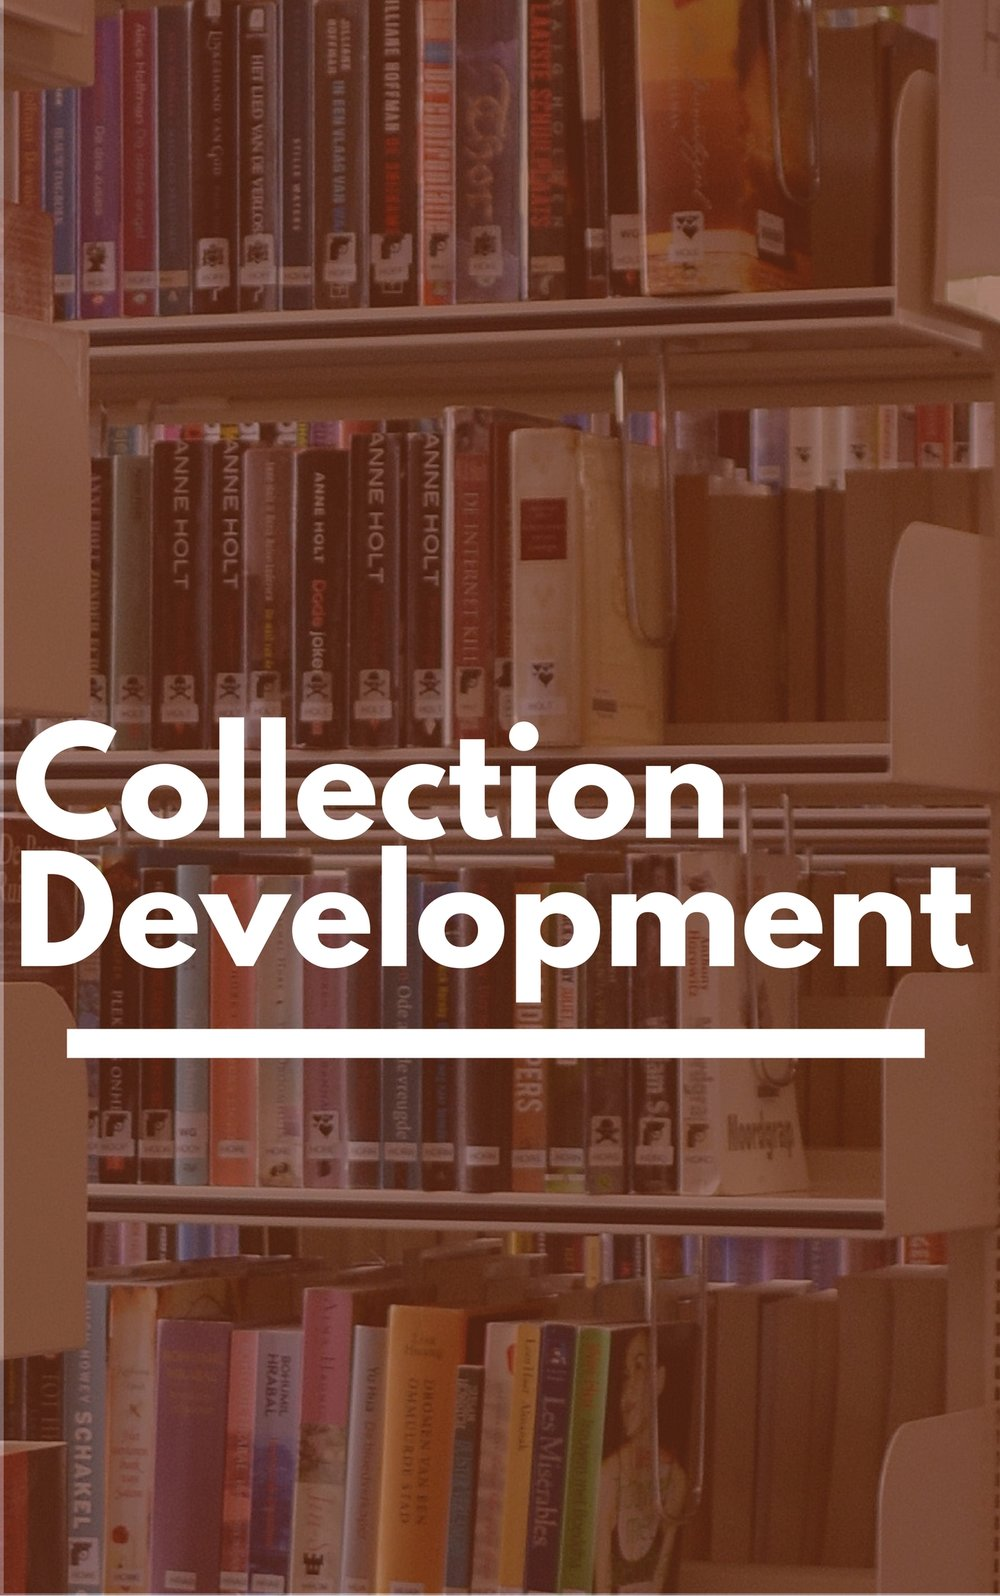 Collection Development - Glen Rock Public Library - NJ